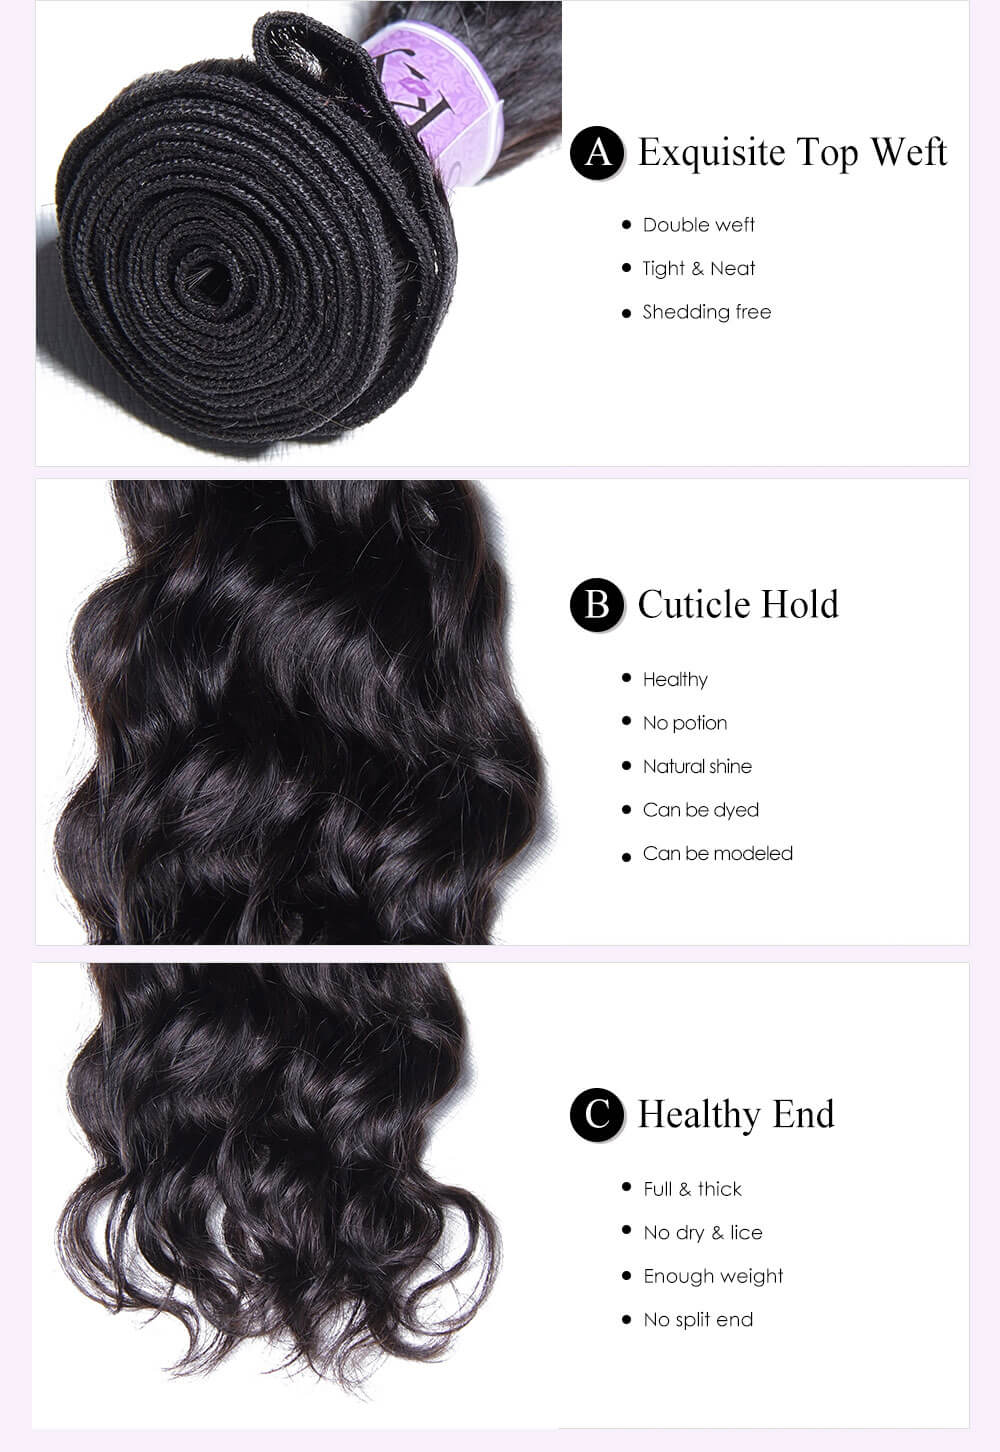 Unice kysiss Indian natural wave 4 bundles hair